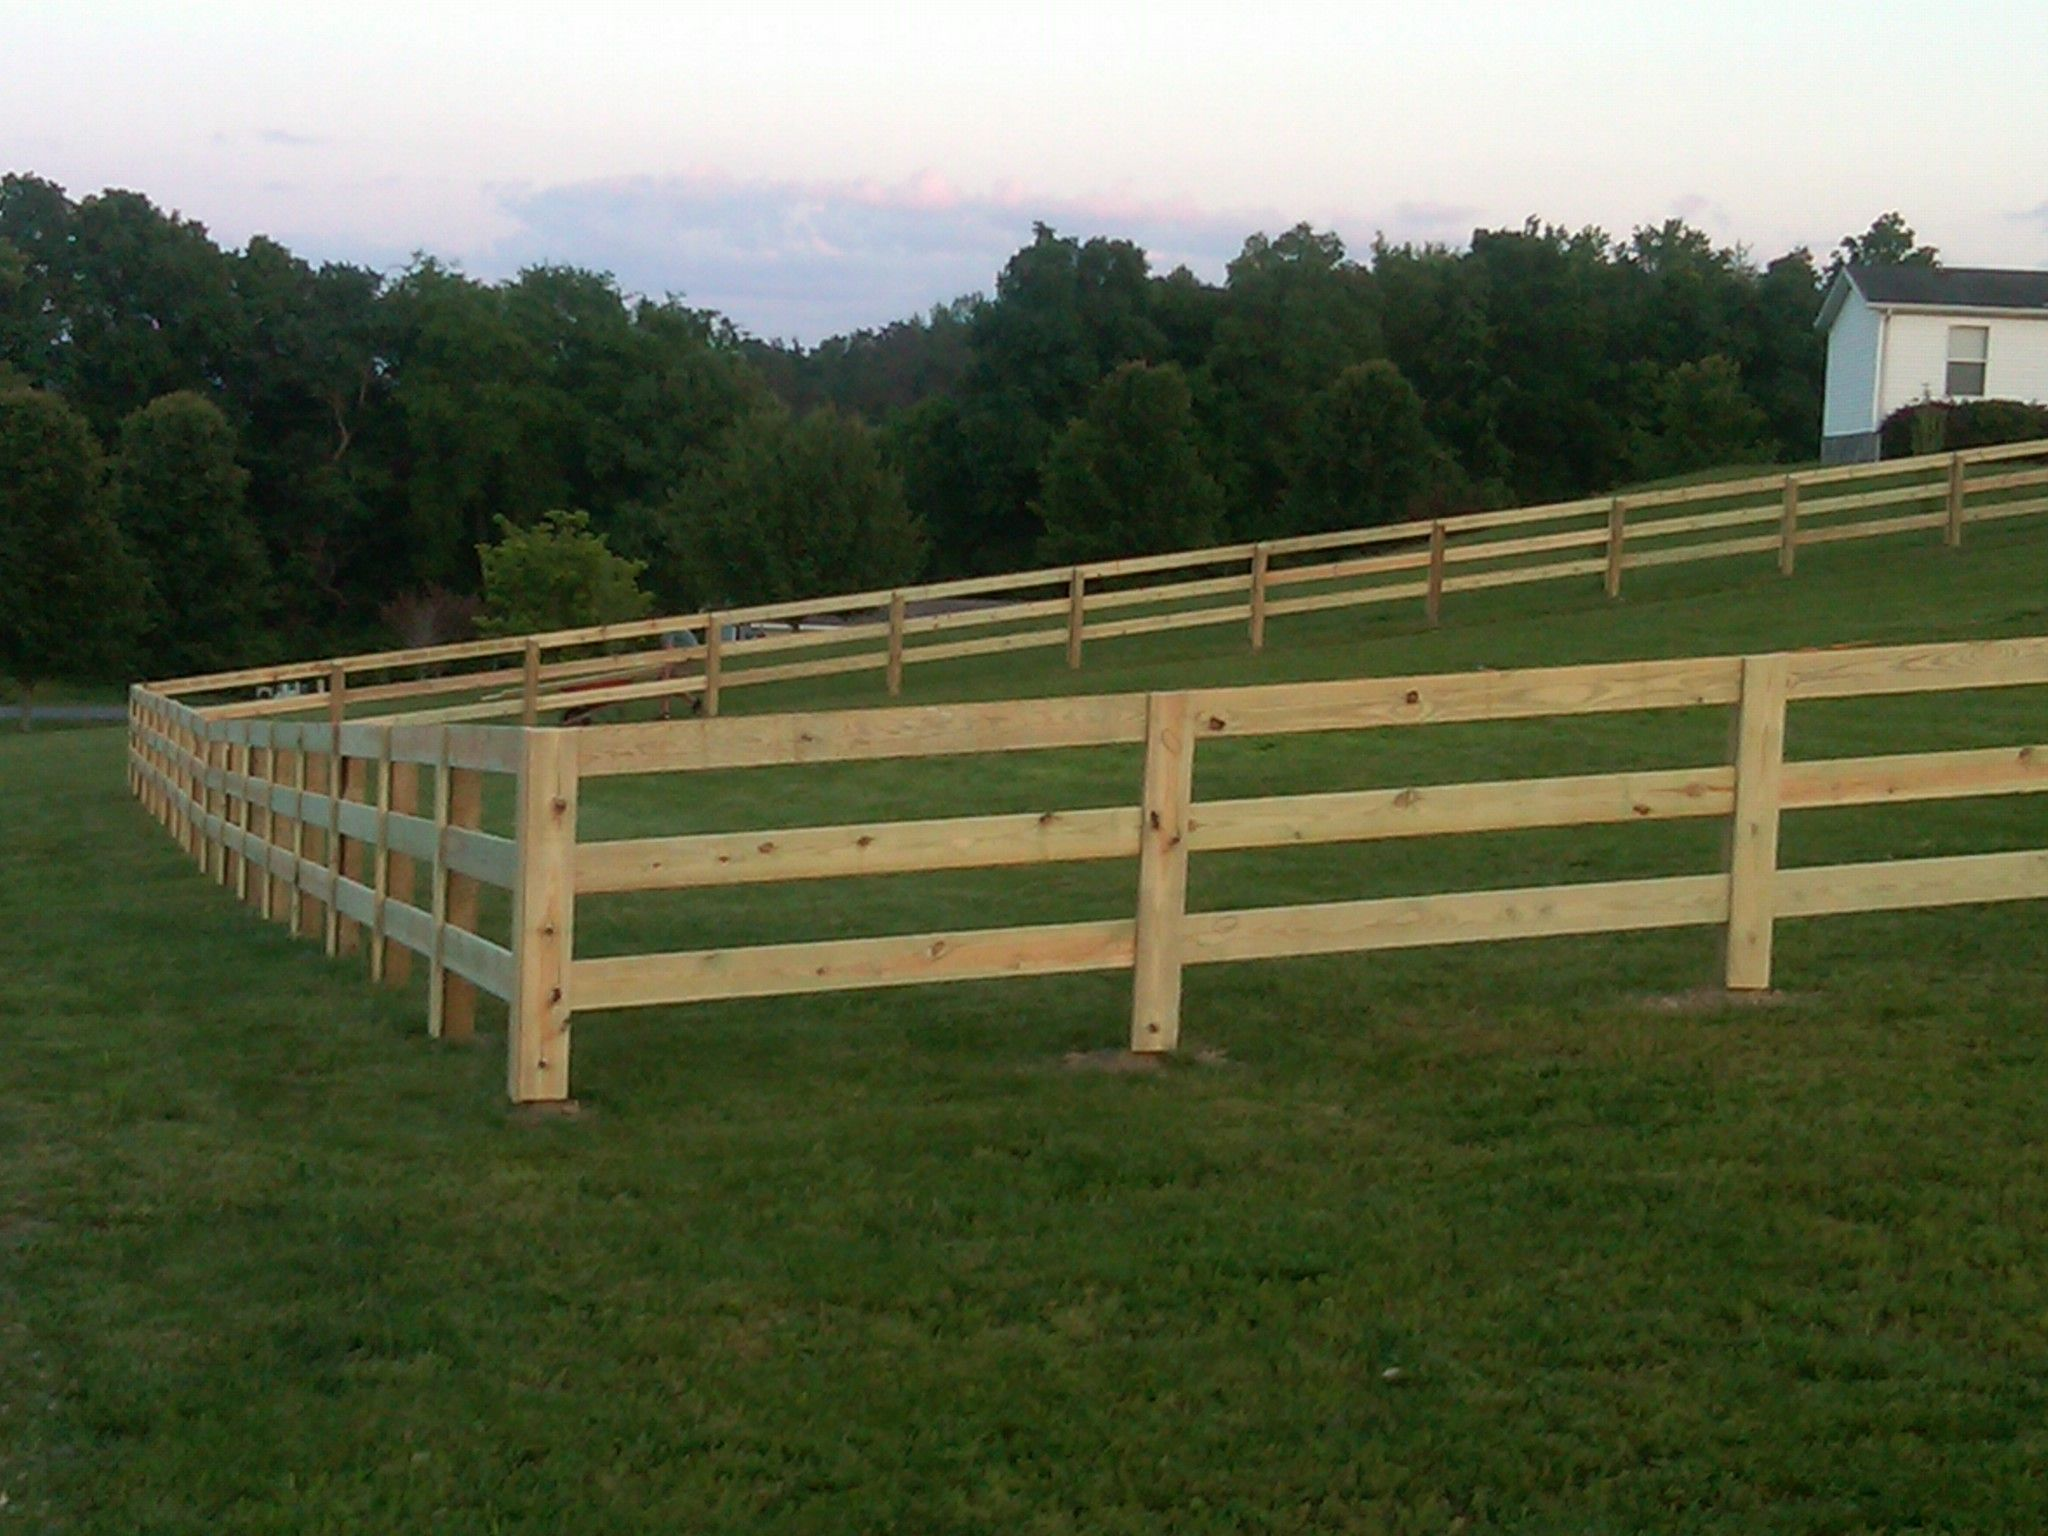 Pin By Laurie Morton On Backyard Improvements Horse Fencing Farm Fence Backyard Structures